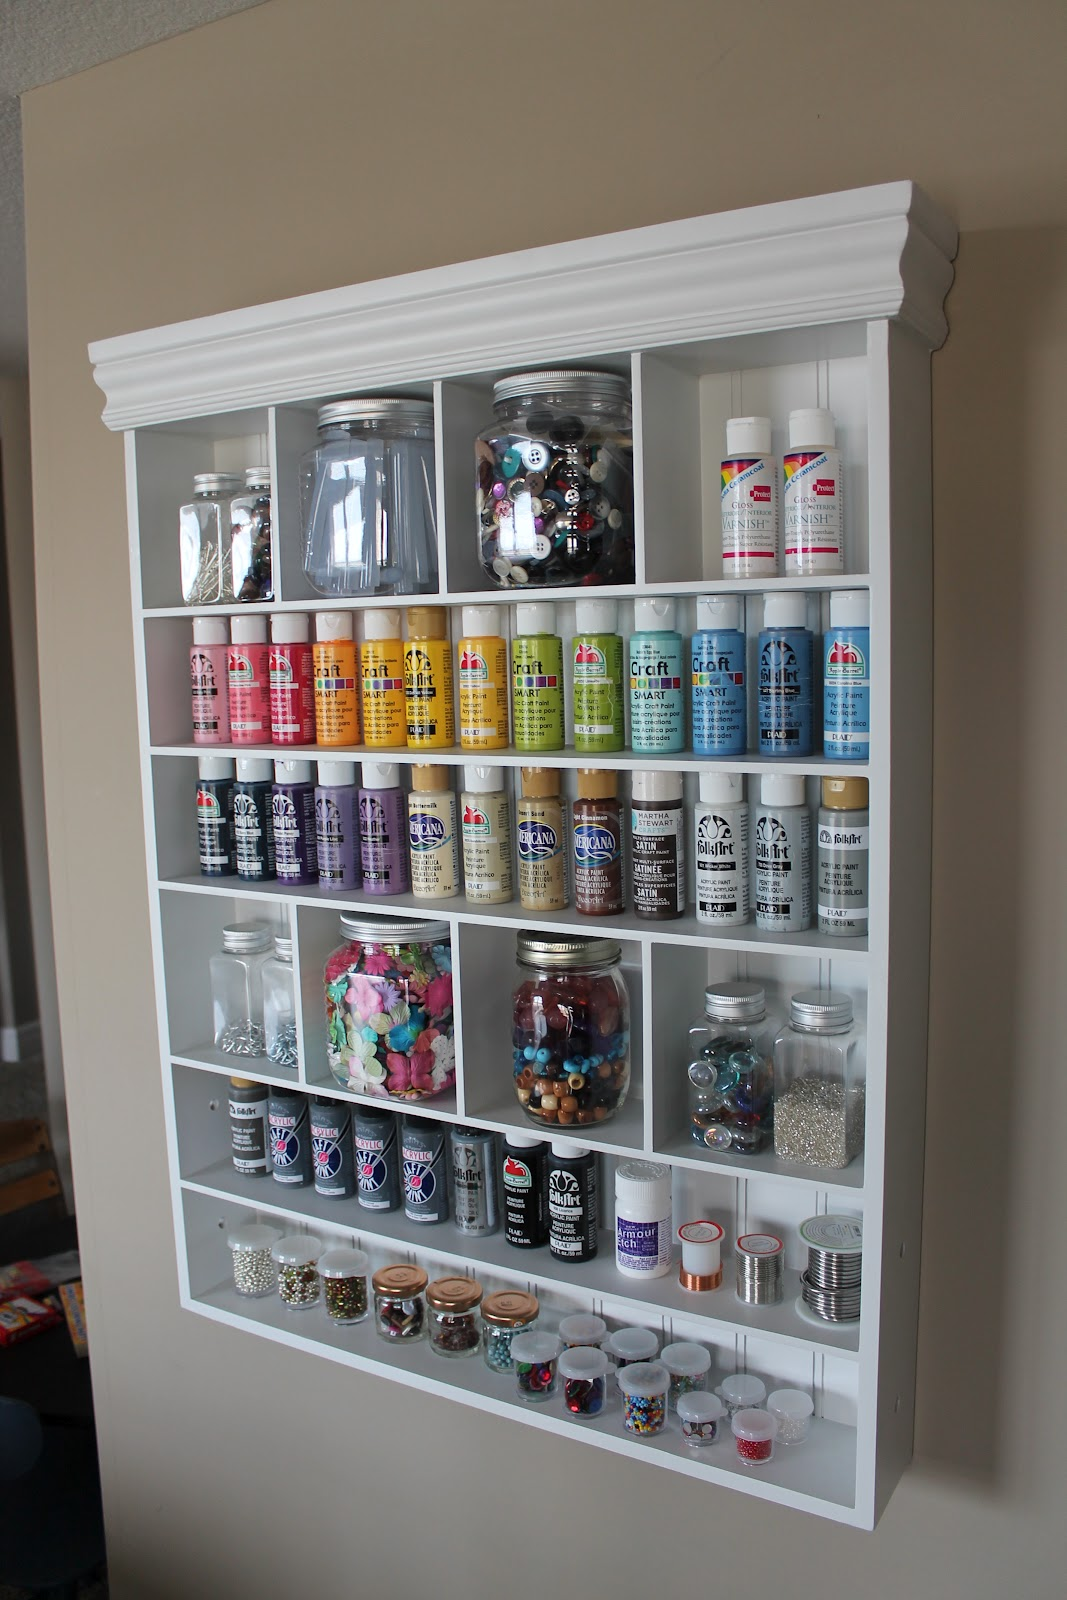 Michaels craft room furniture - Behind My Sewing Table I Hung This Shelf To Hold Paints Beads Buttons And Other Little Things That Fit On There They Sell This Shelf At Michaels